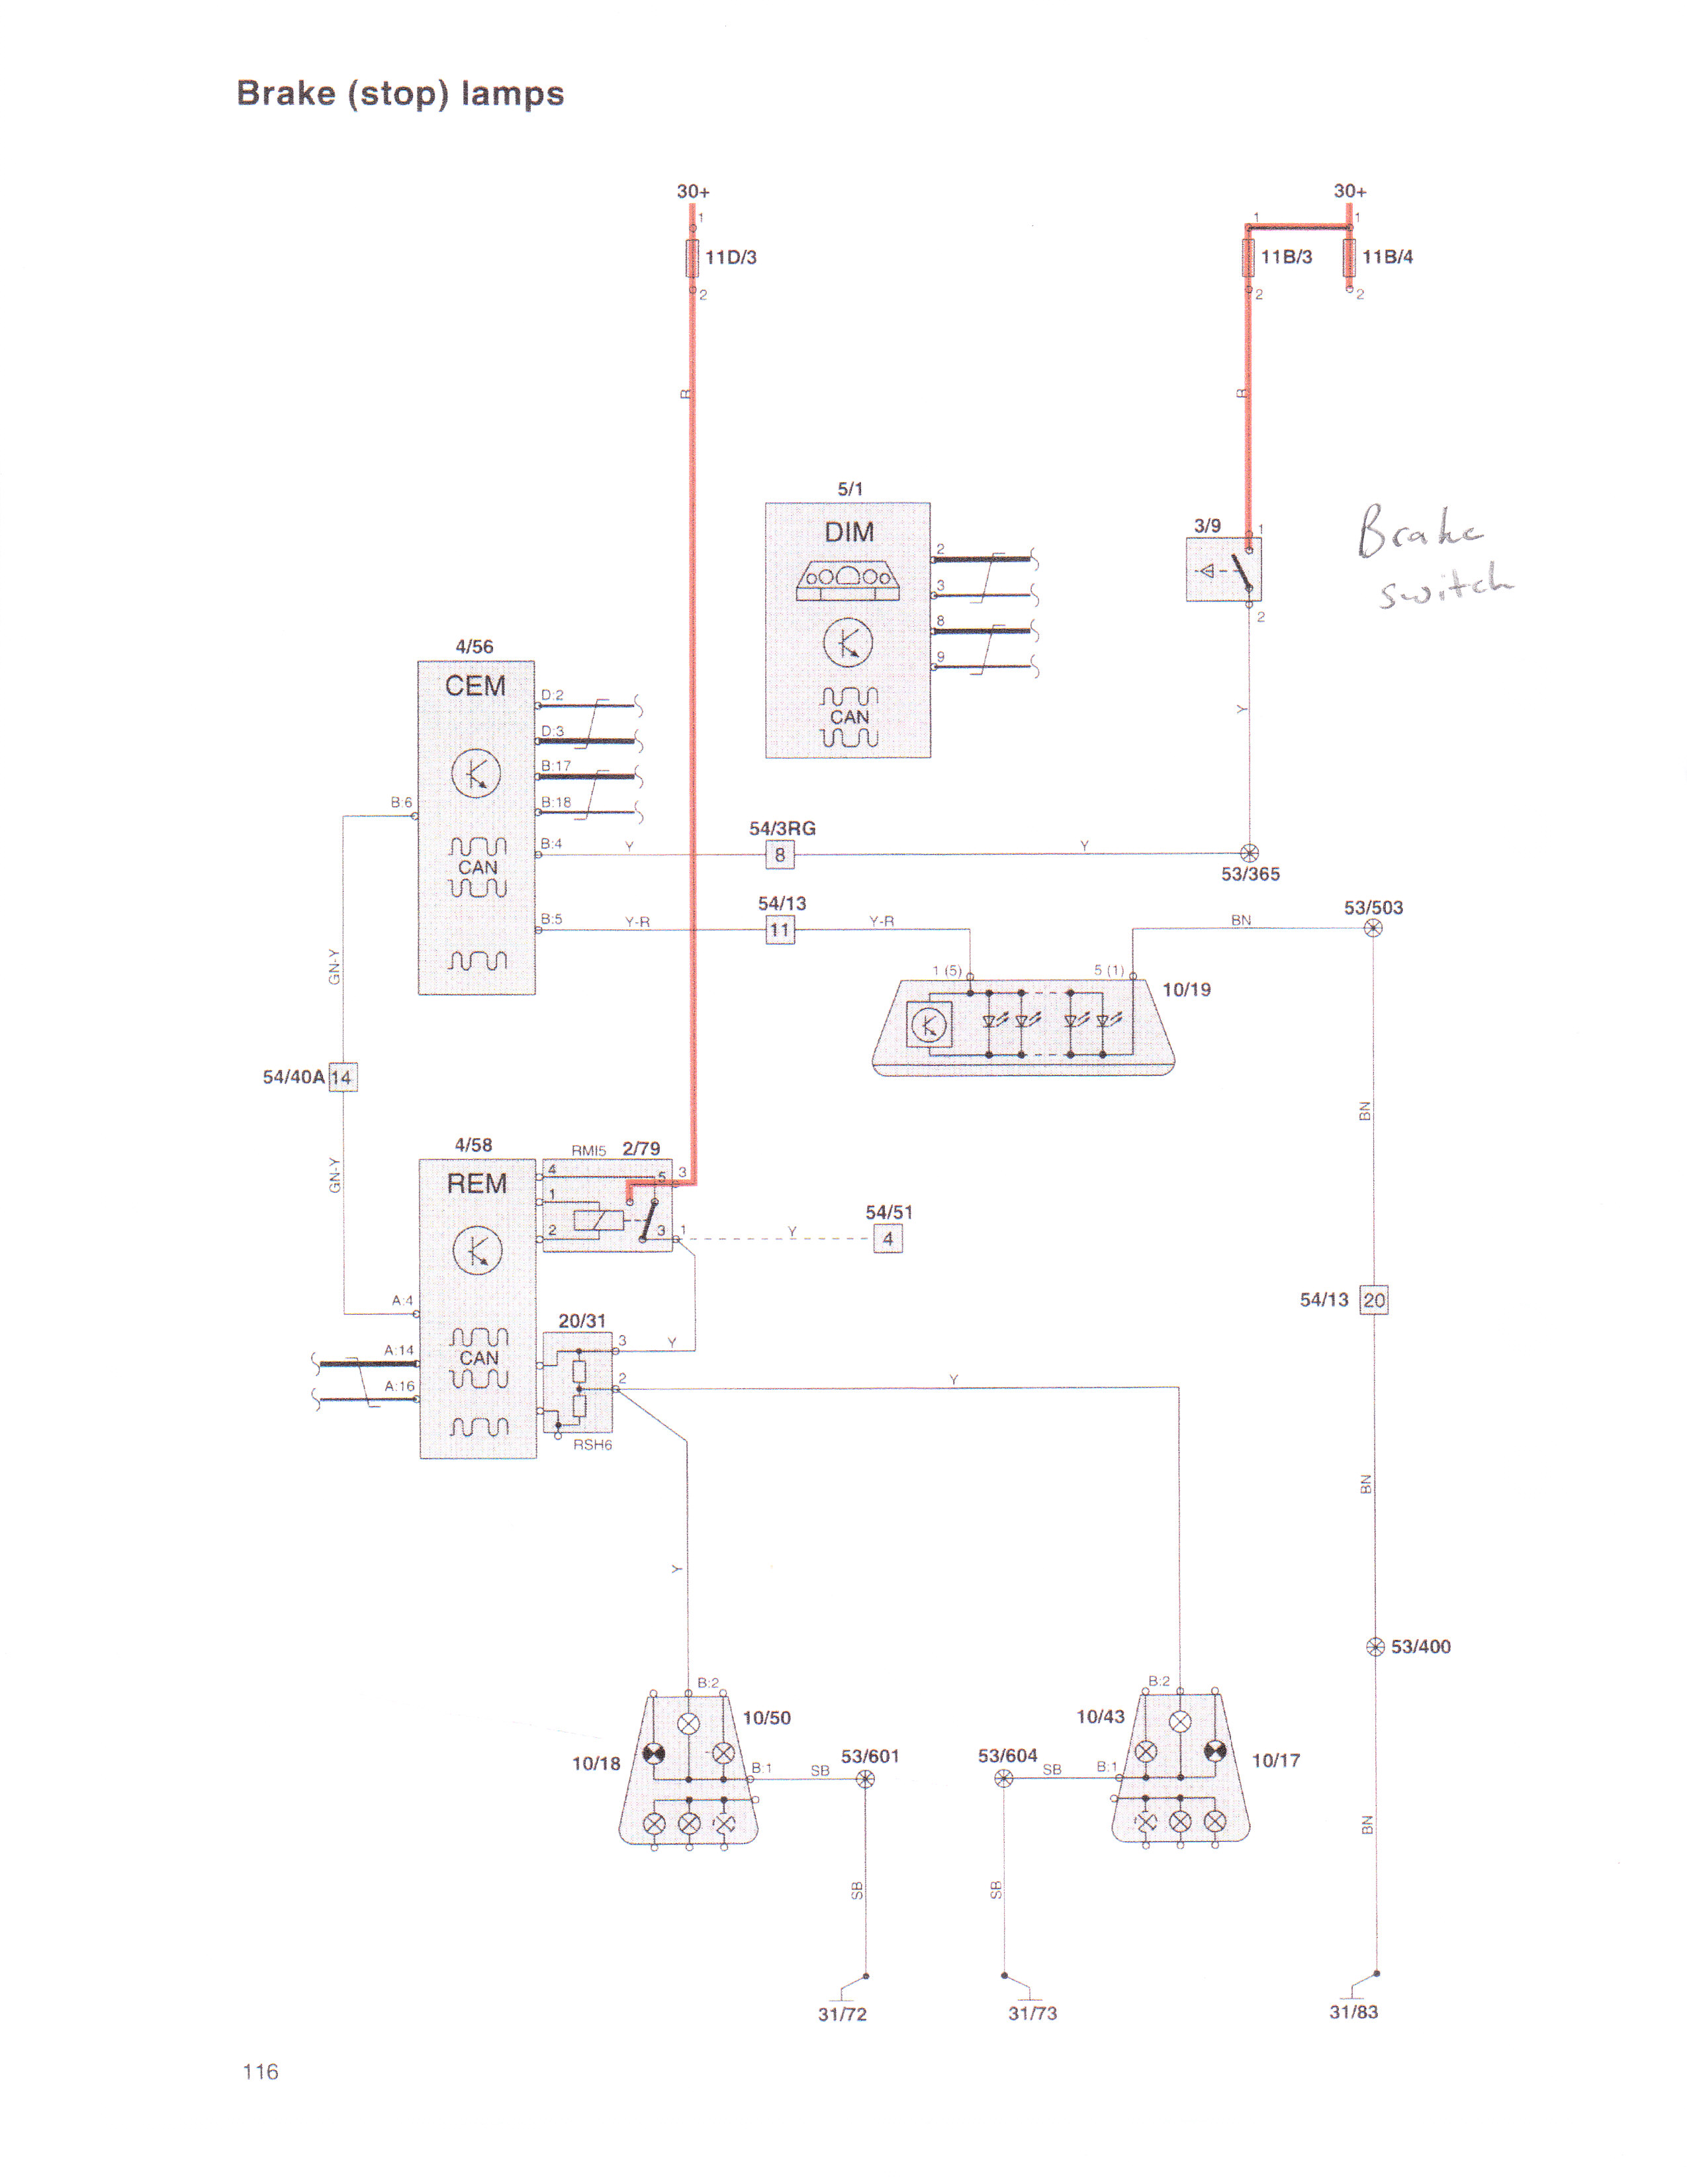 volvo xc90 brake light wiring diagram html